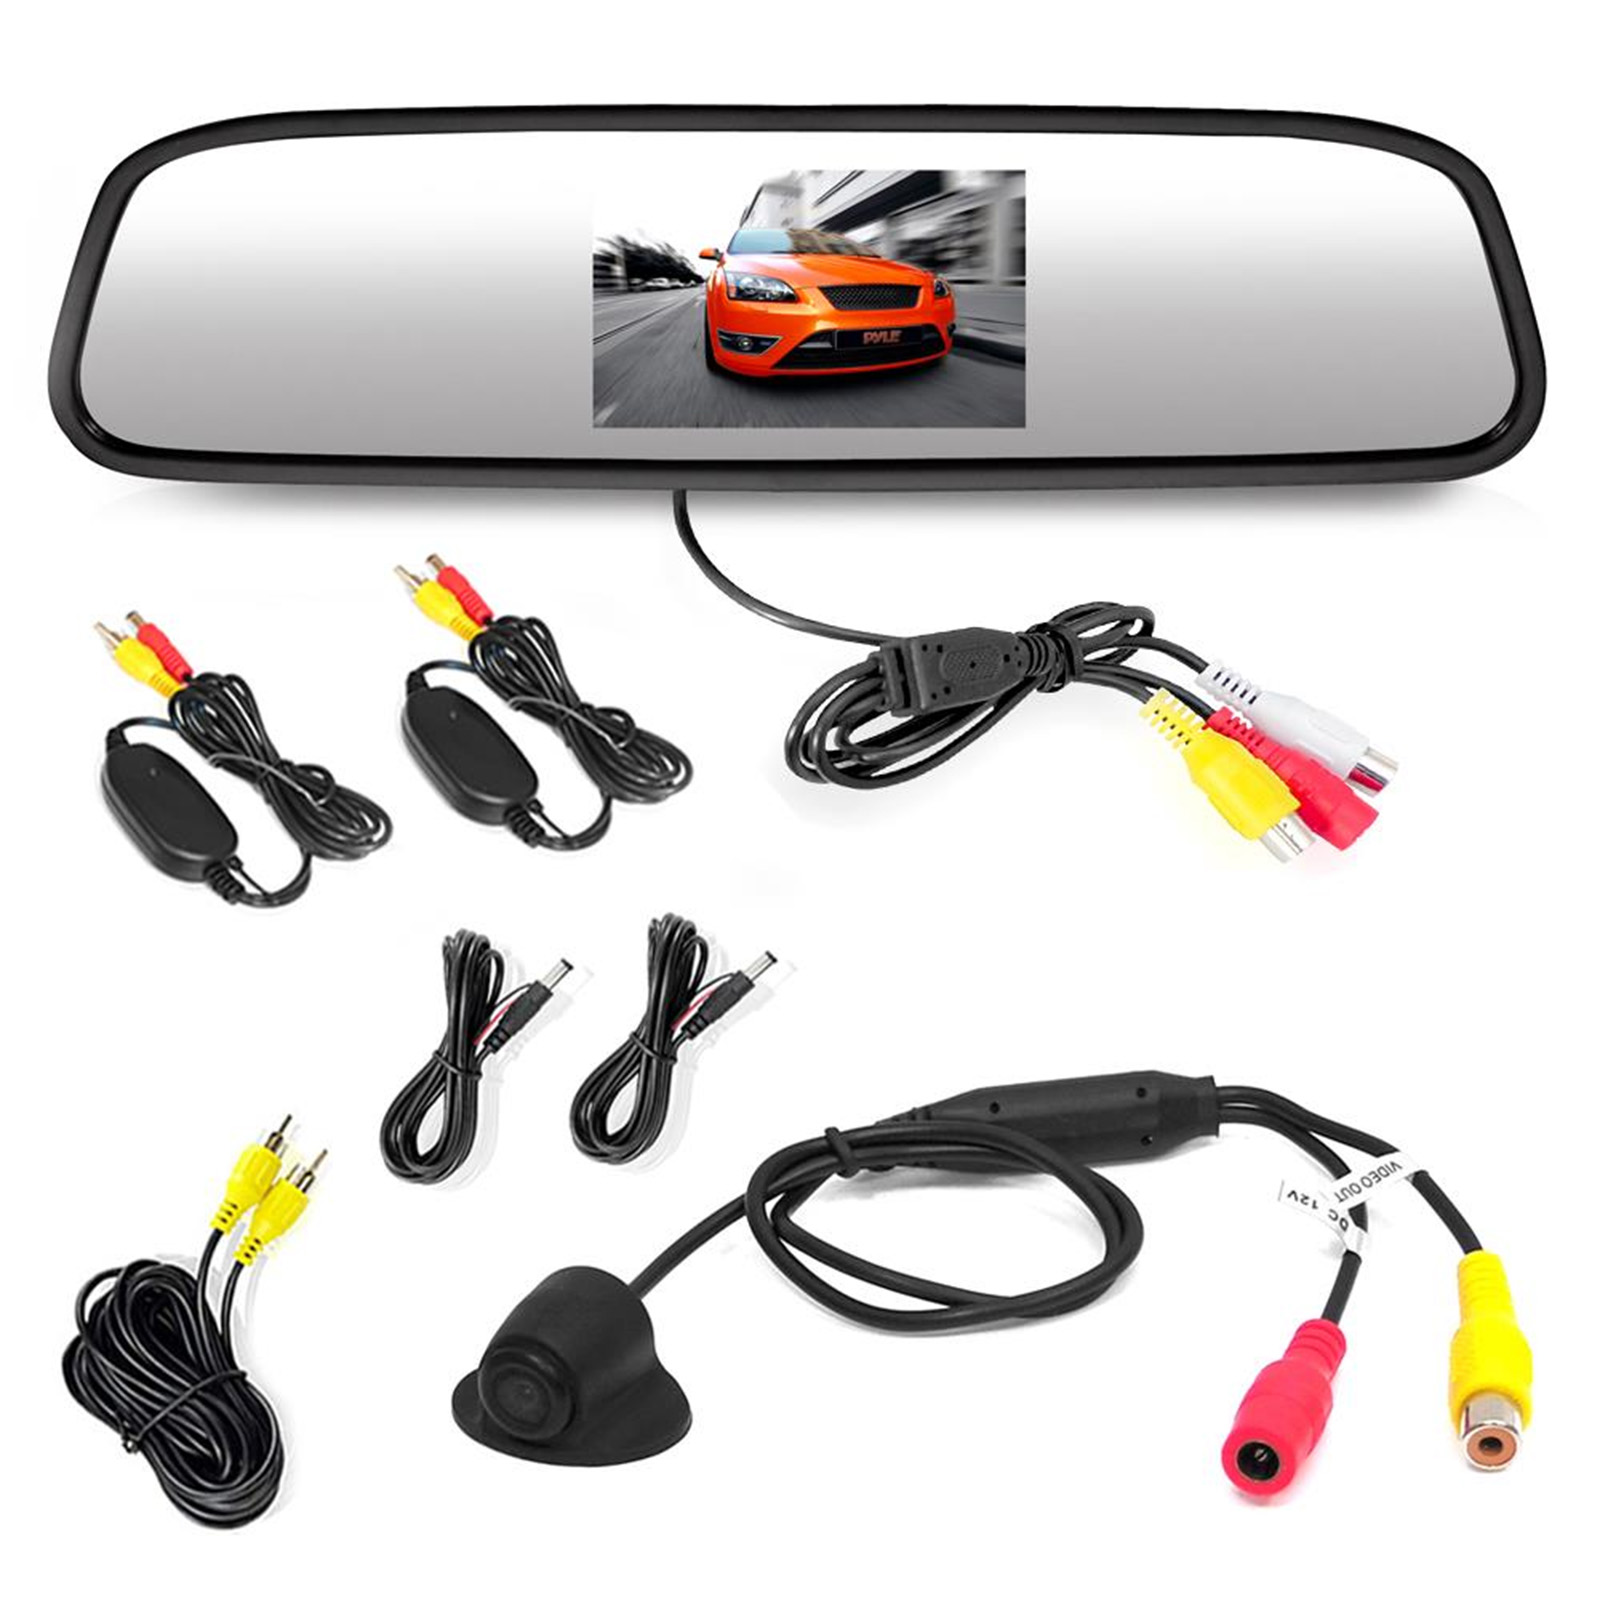 "Pyle cord free Rearview Backup Camera & Mirror Monitor, Waterproof Night Vis Cam, 4.3"" Screen, Distance Scale Lines, Parking/Reverse Assist"